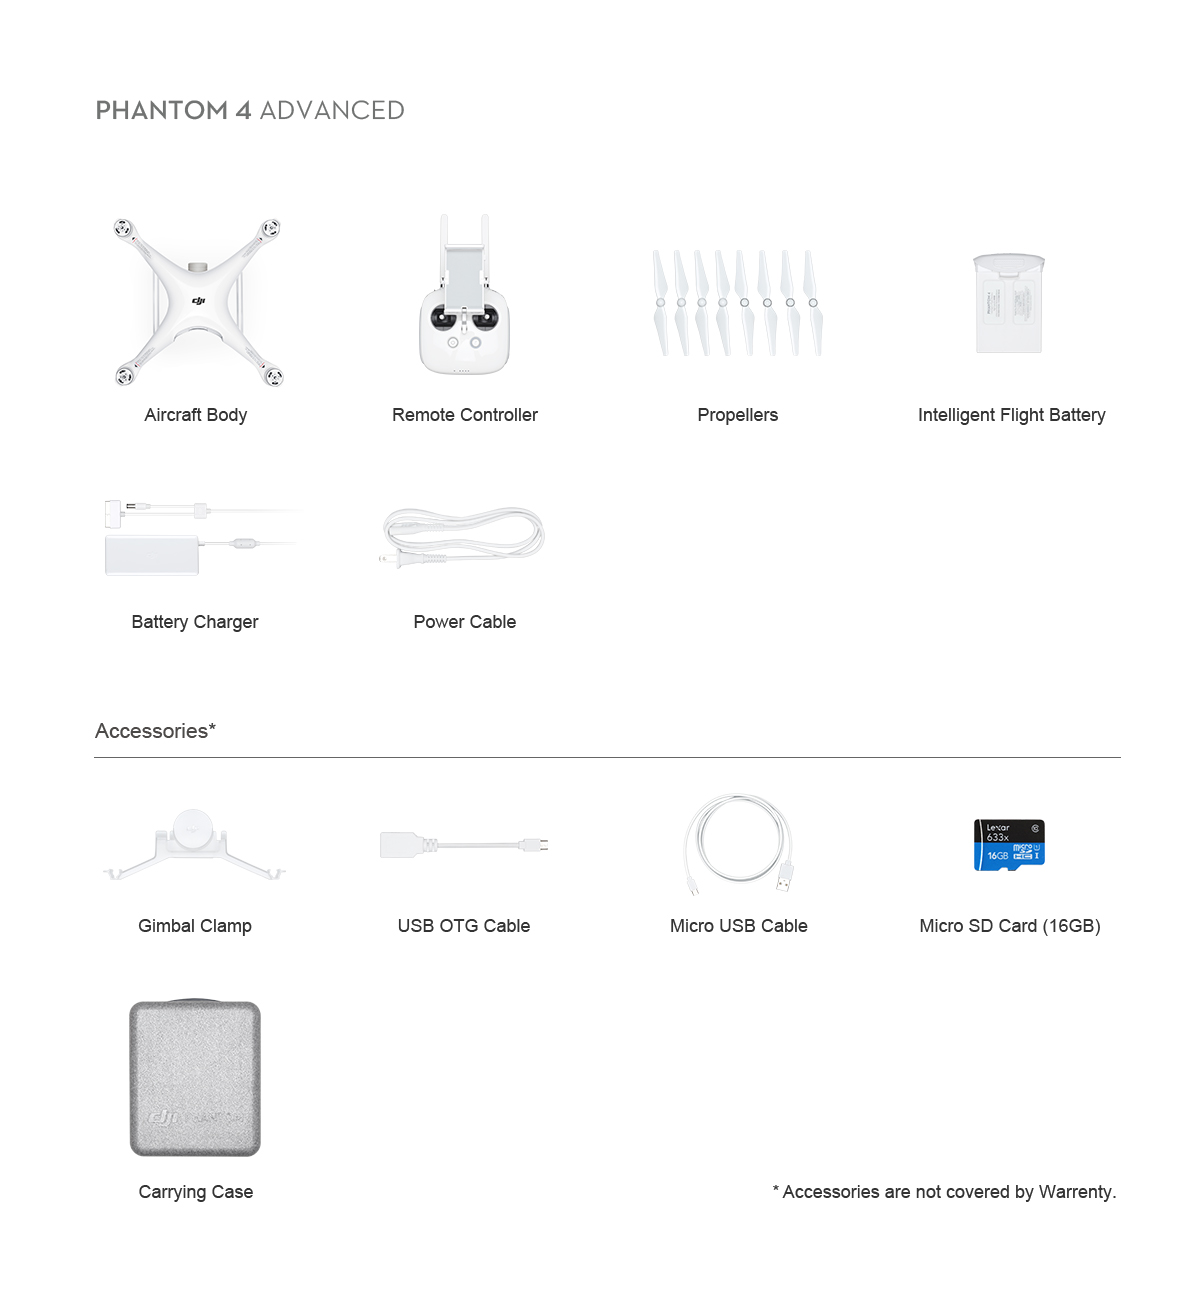 phantom 4 advanced in box